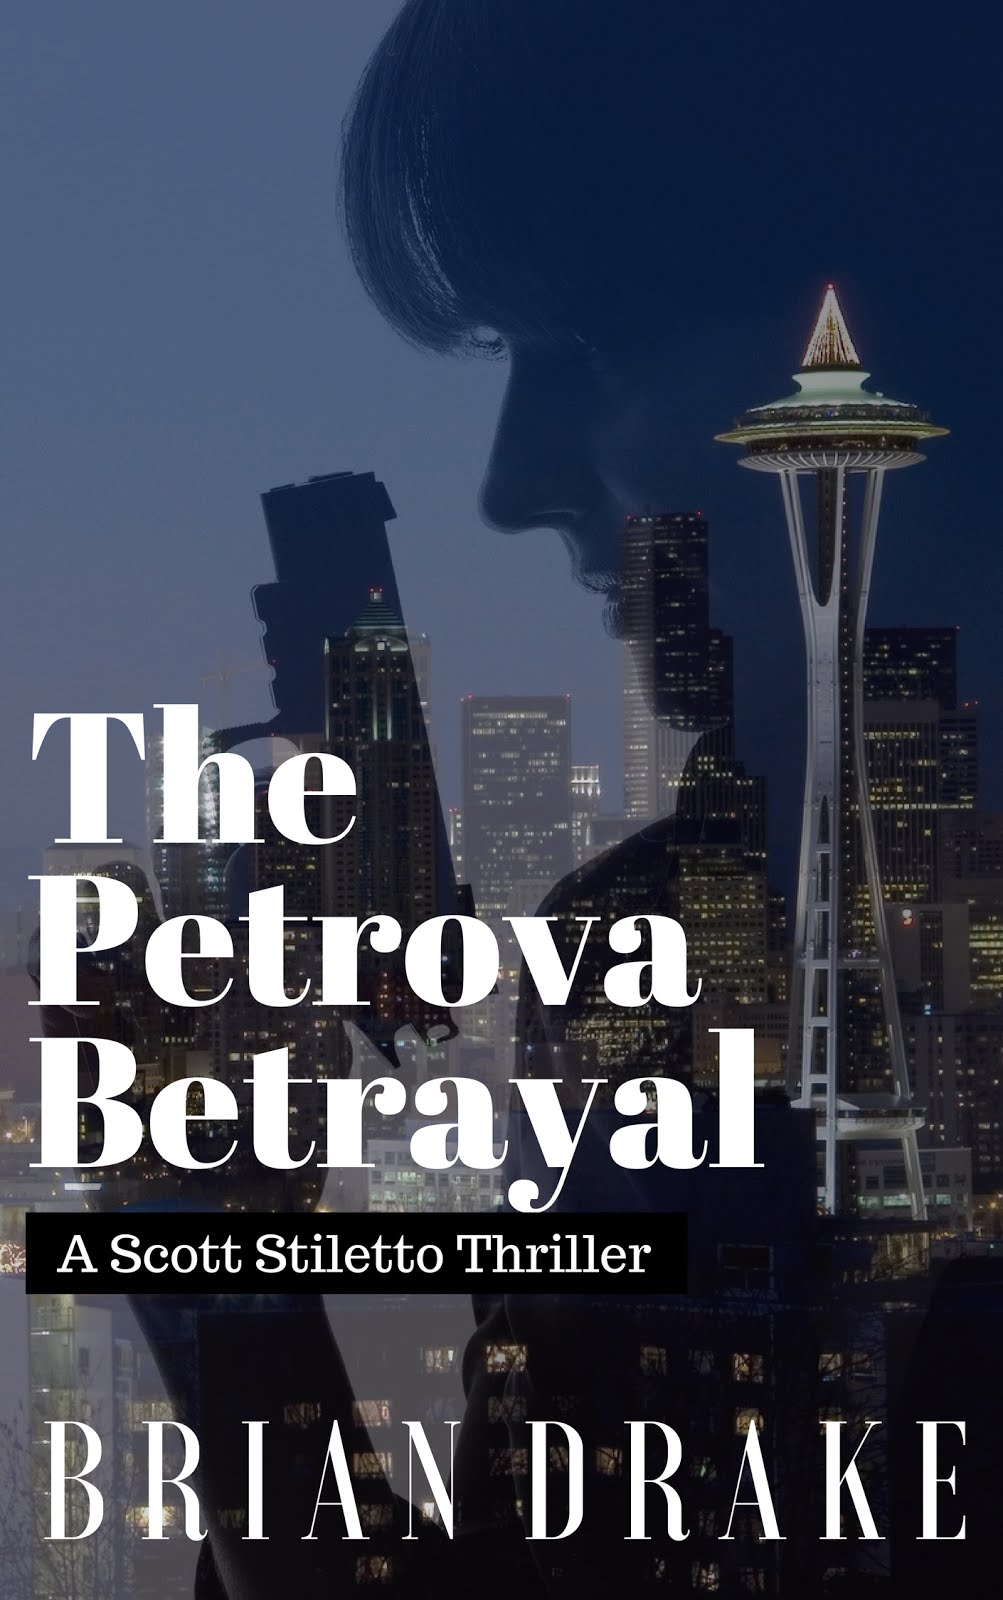 The Petrova Betrayal: A Scott Stiletto Thriller